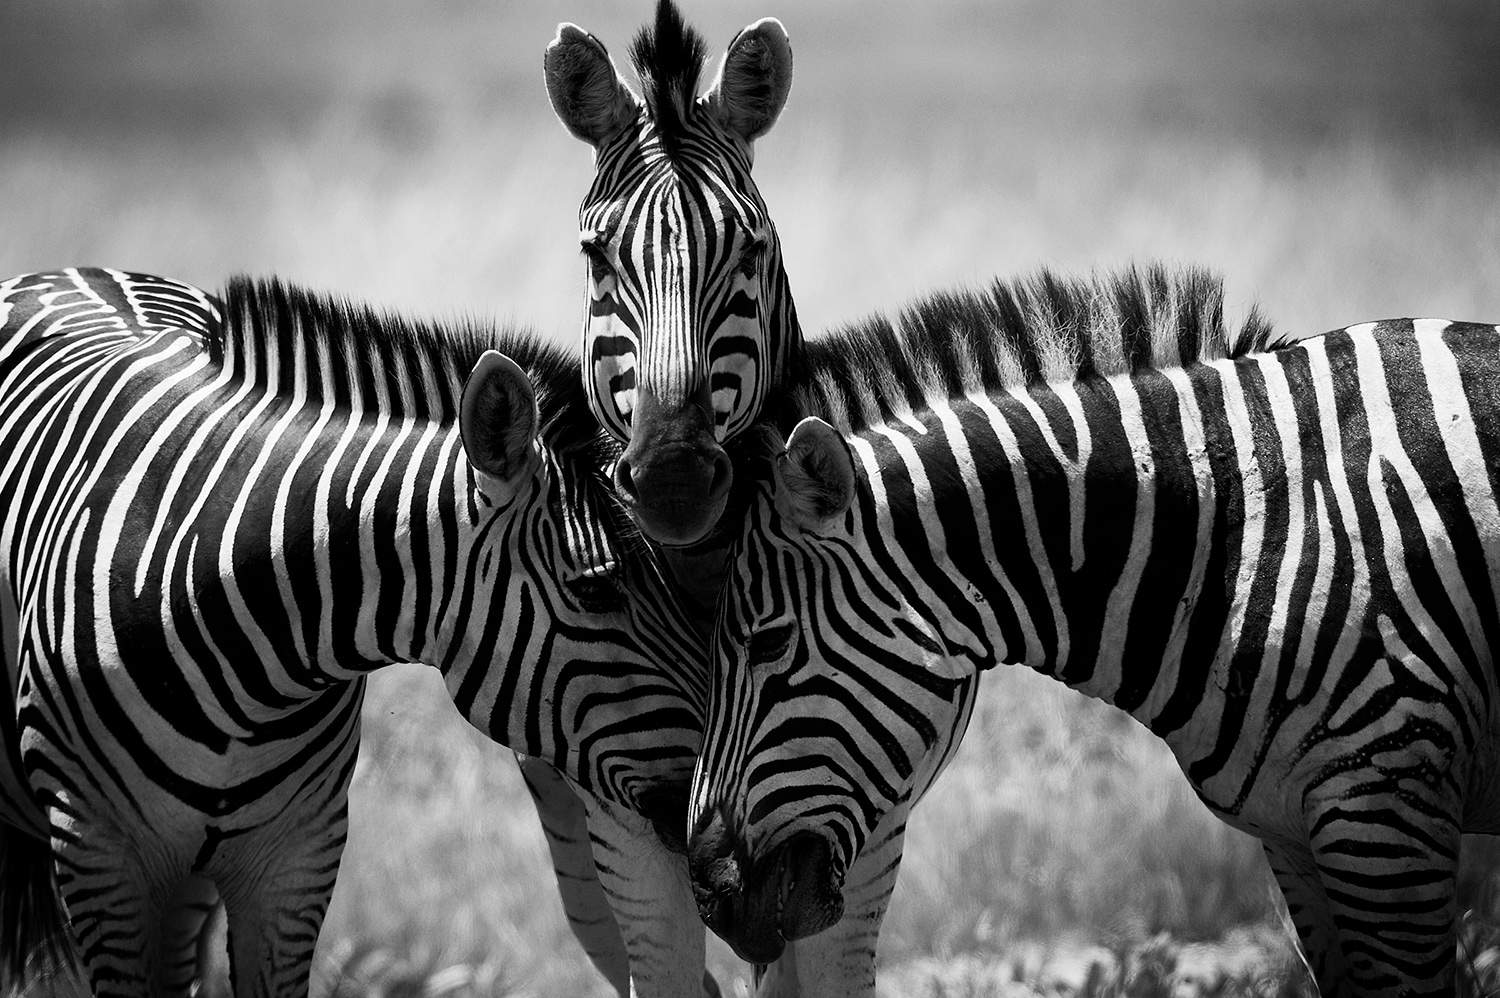 Bruce Dorn photograph of 3 Zebras in Black and White